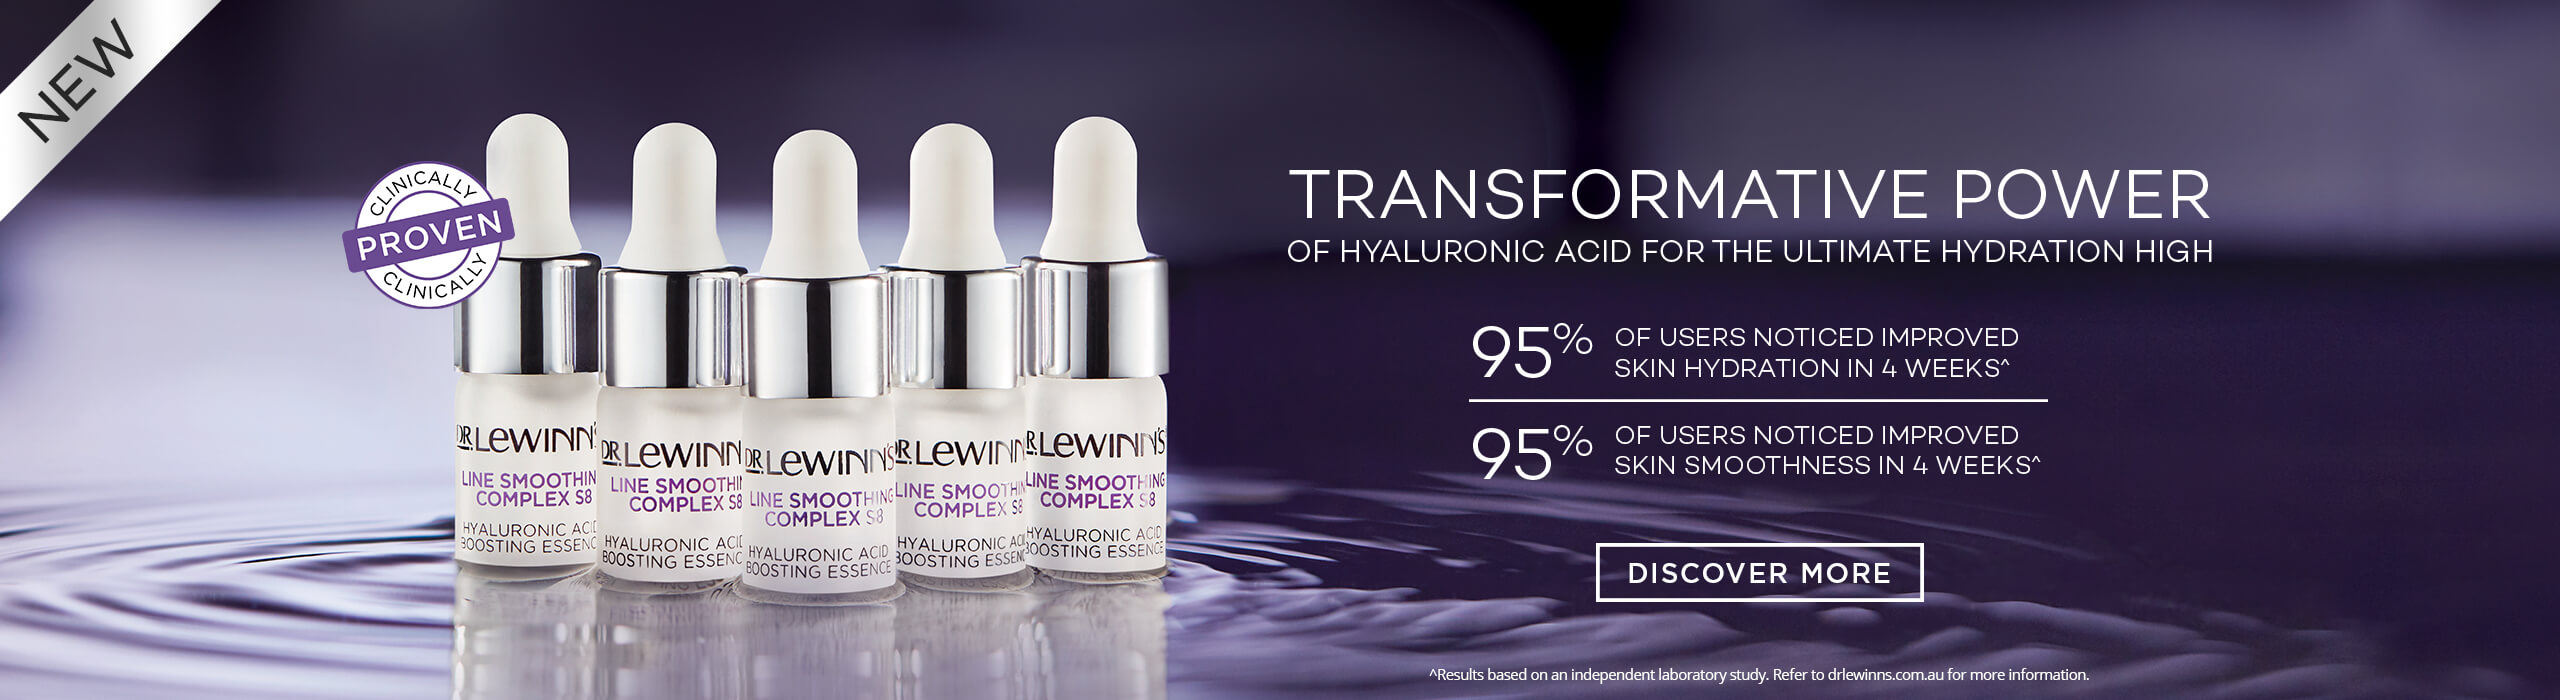 Transformative Power of Hyaluronic Acid for the Ultimate Hydration High - 95% of users noticed improved skin hydration in 4 weeks* - 95% of users noticed improved skin smoothness in 4 weeks* - Clinically Proven - Discover More